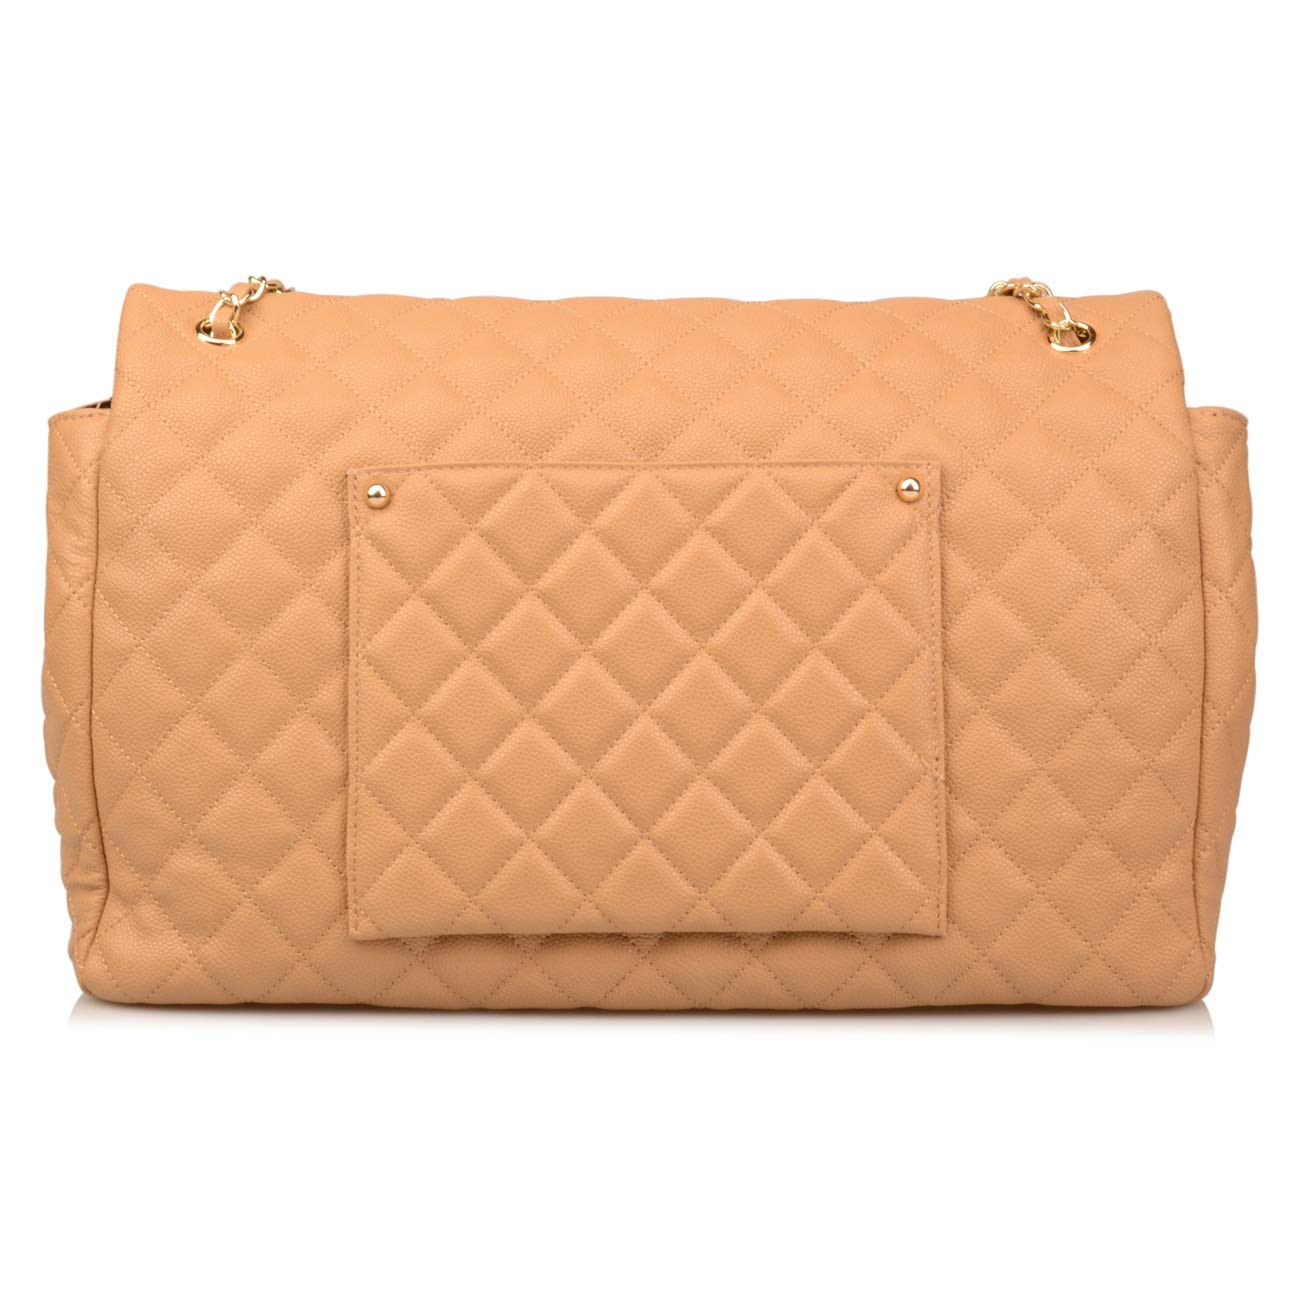 Ainifeel Women's Genuine Leather Oversize Quilted Flap Handbag Large Travelling Tote Bag Luggage Holdall (Oversize, Apricot (gold hardware)) by Ainifeel Quilted&Chain Strap Collection (Image #4)